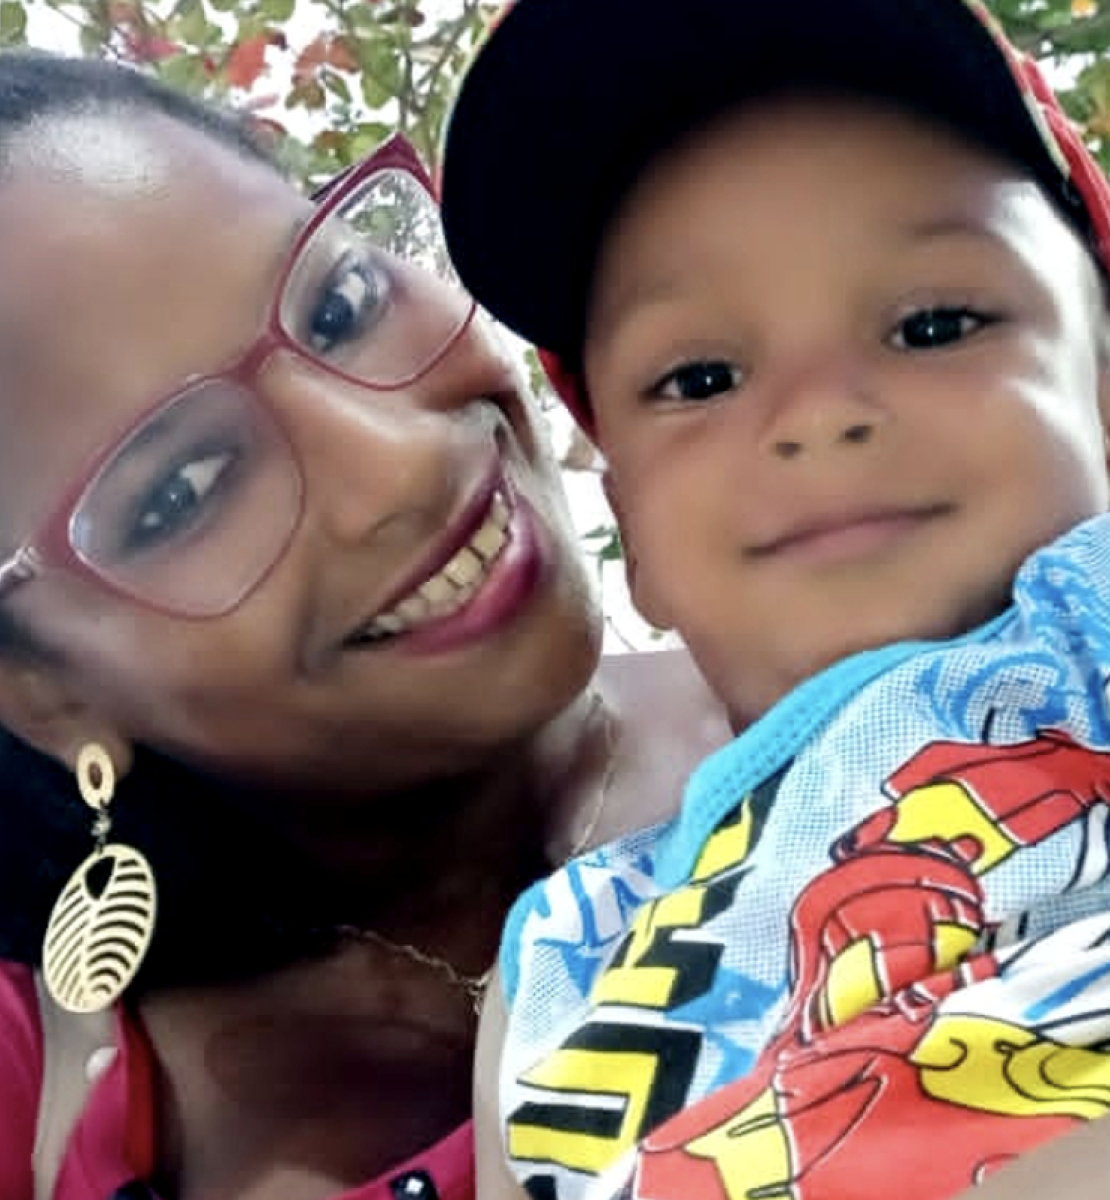 A woman in a pink shirt and glasses smiles at the camera with a child in a tank top and ared hat.